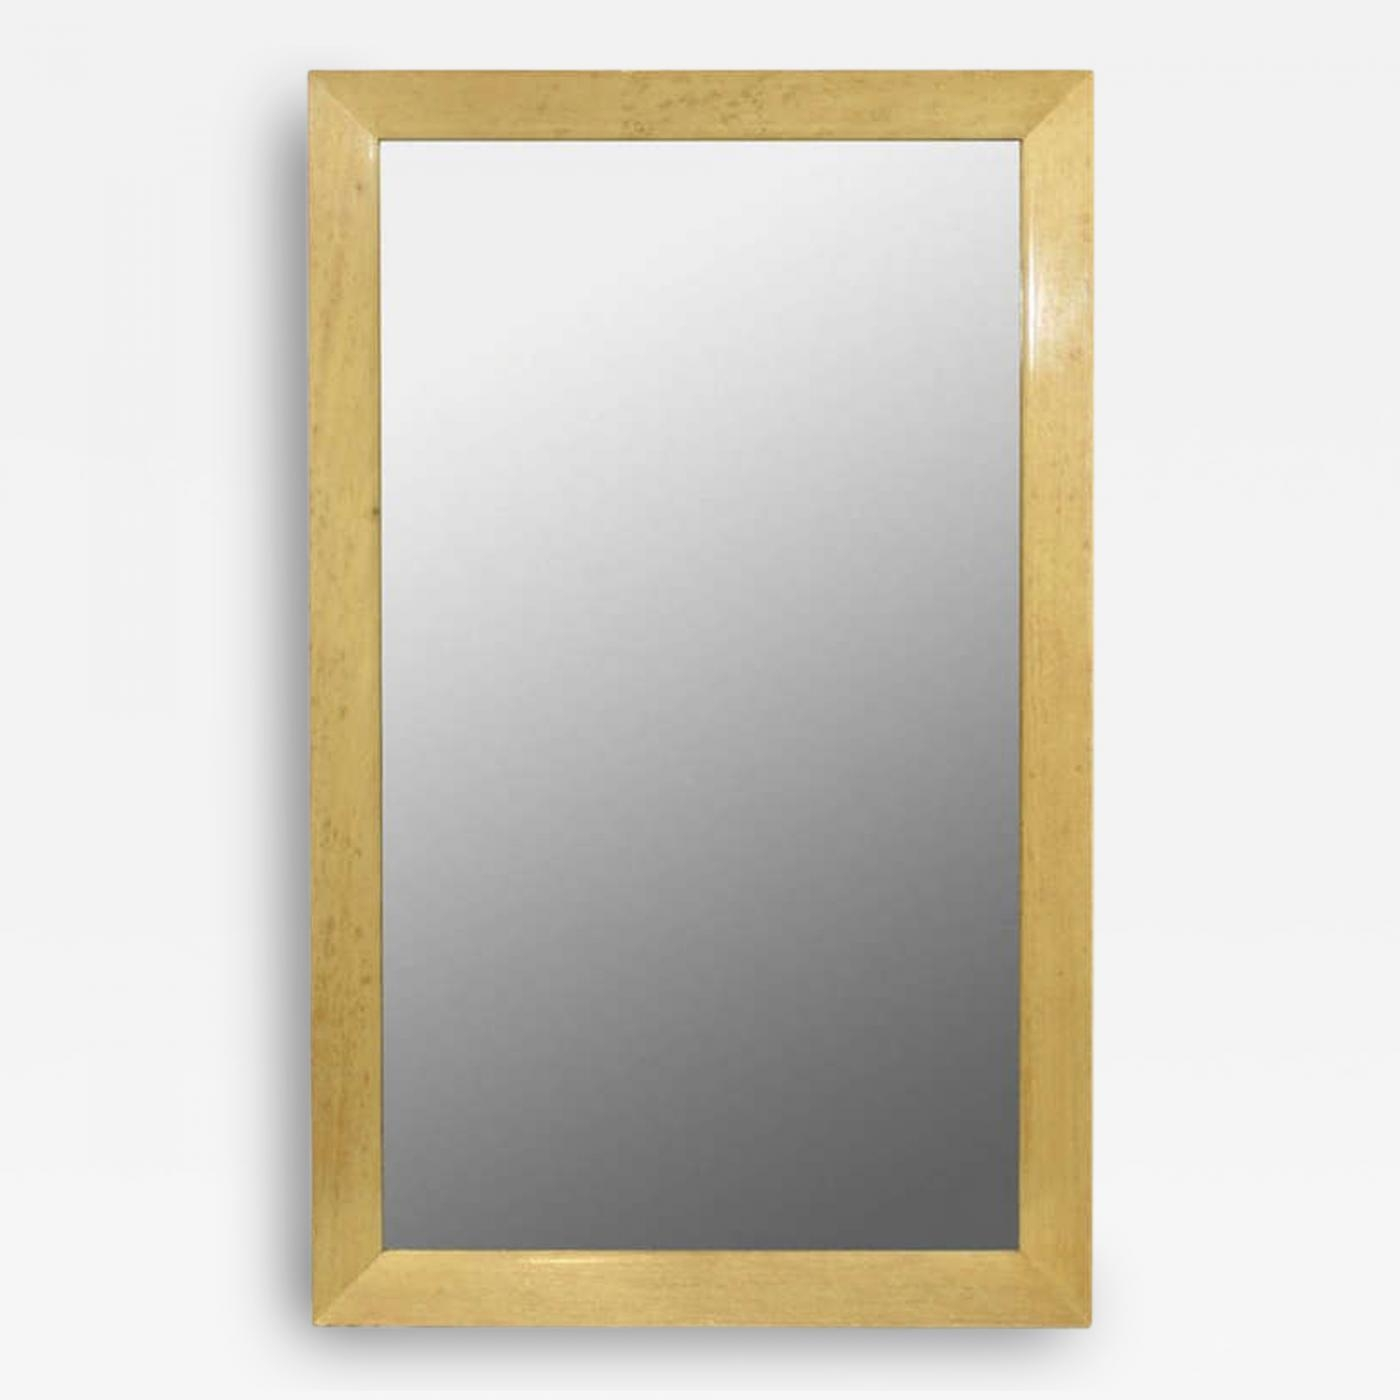 Paul T Frankl An Oak Framed Wall Mirror Paul Frankl For Johnson Pertaining To Oak Framed Wall Mirrors (View 14 of 15)